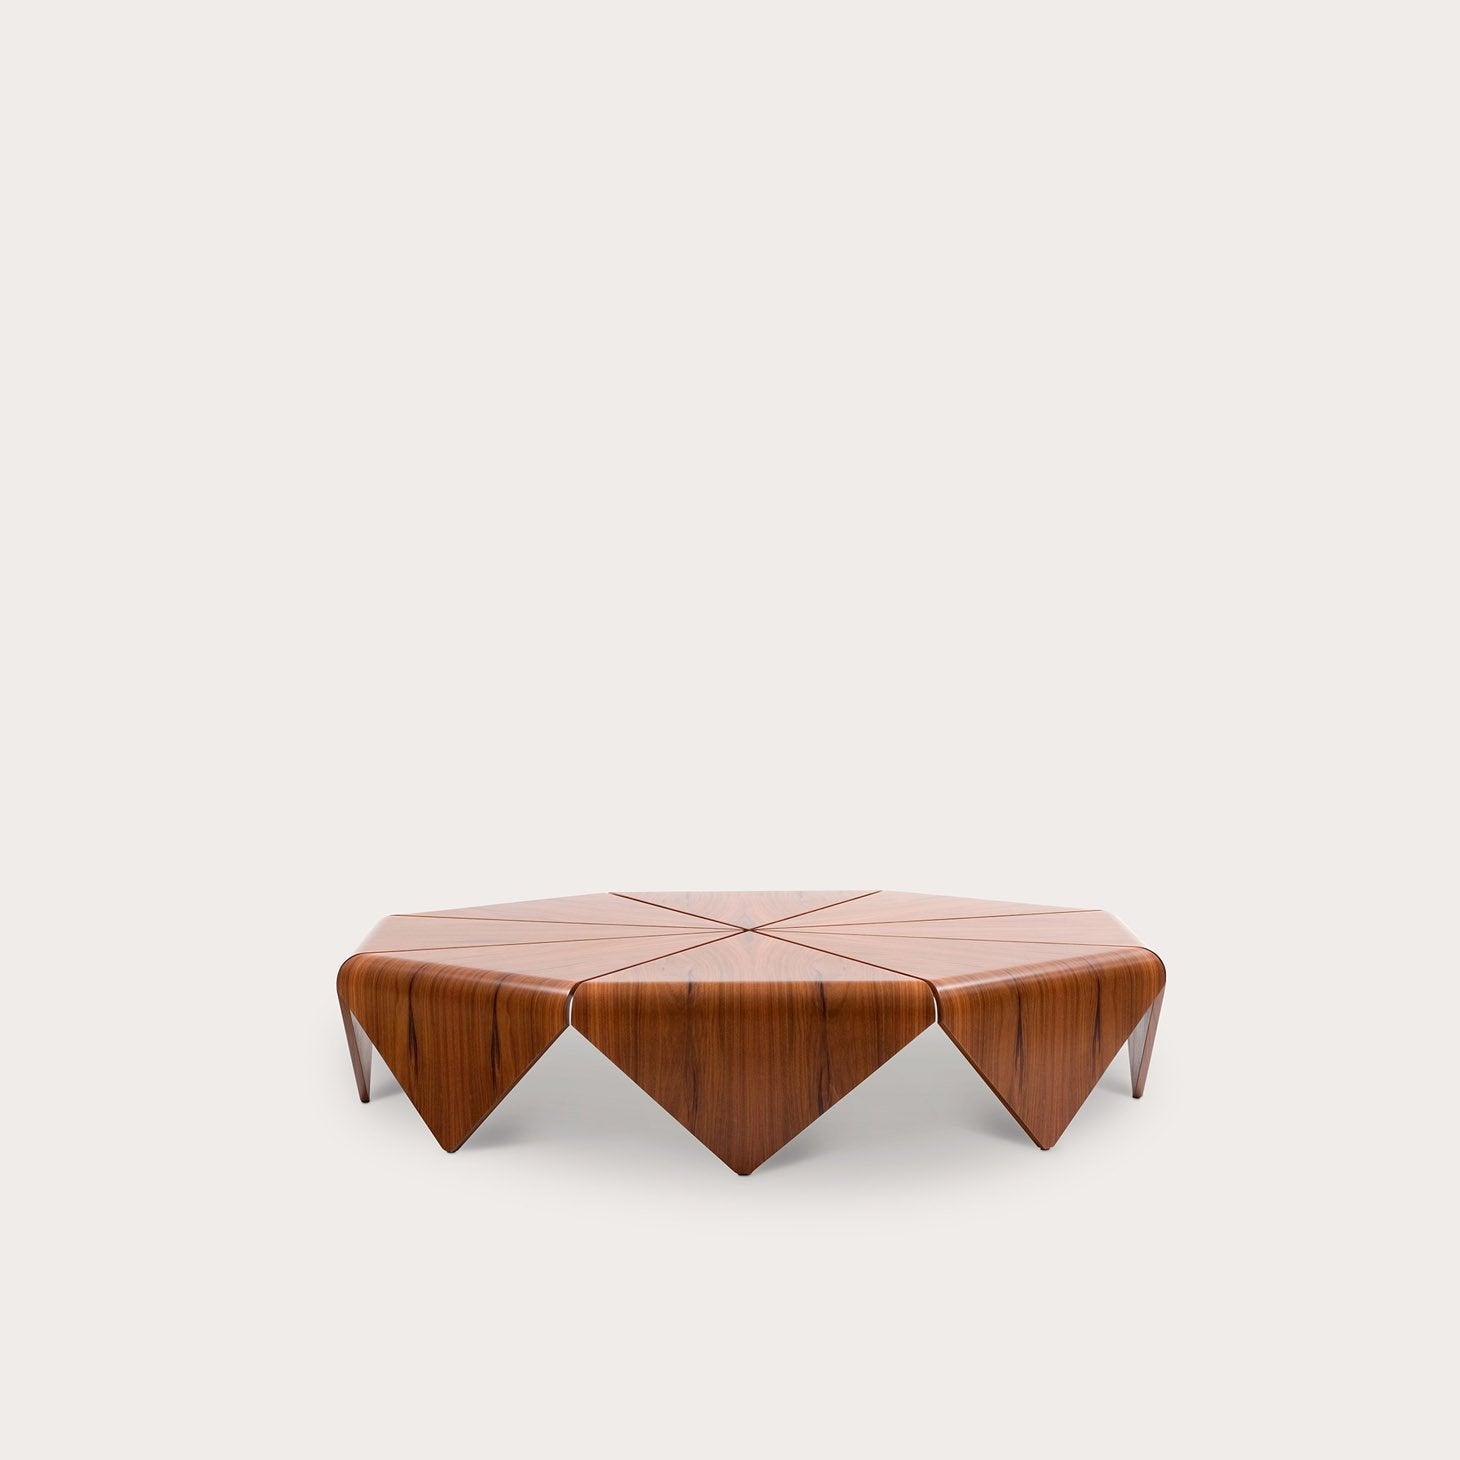 Petalas Tables Jorge Zalszupin Designer Furniture Sku: 003-230-10079